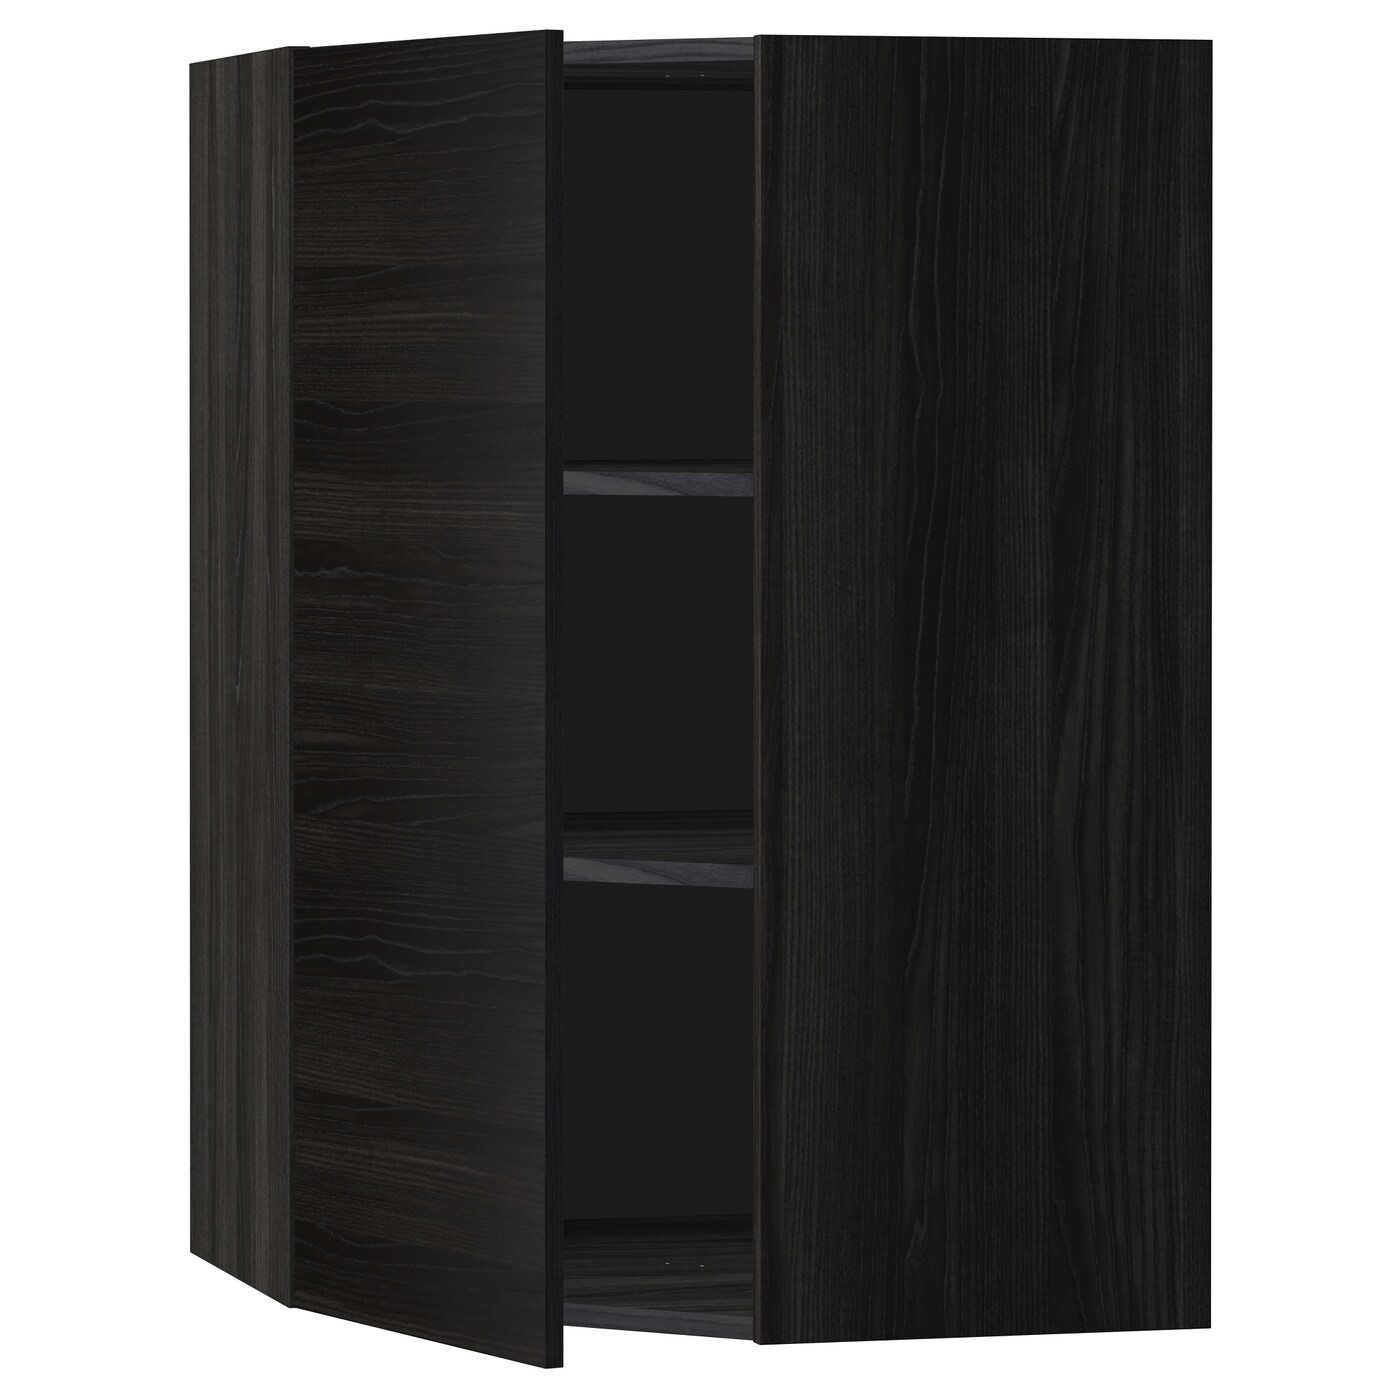 Ikea metod corner wall cabinet with shelves sturdy frame construction 18 mm thick